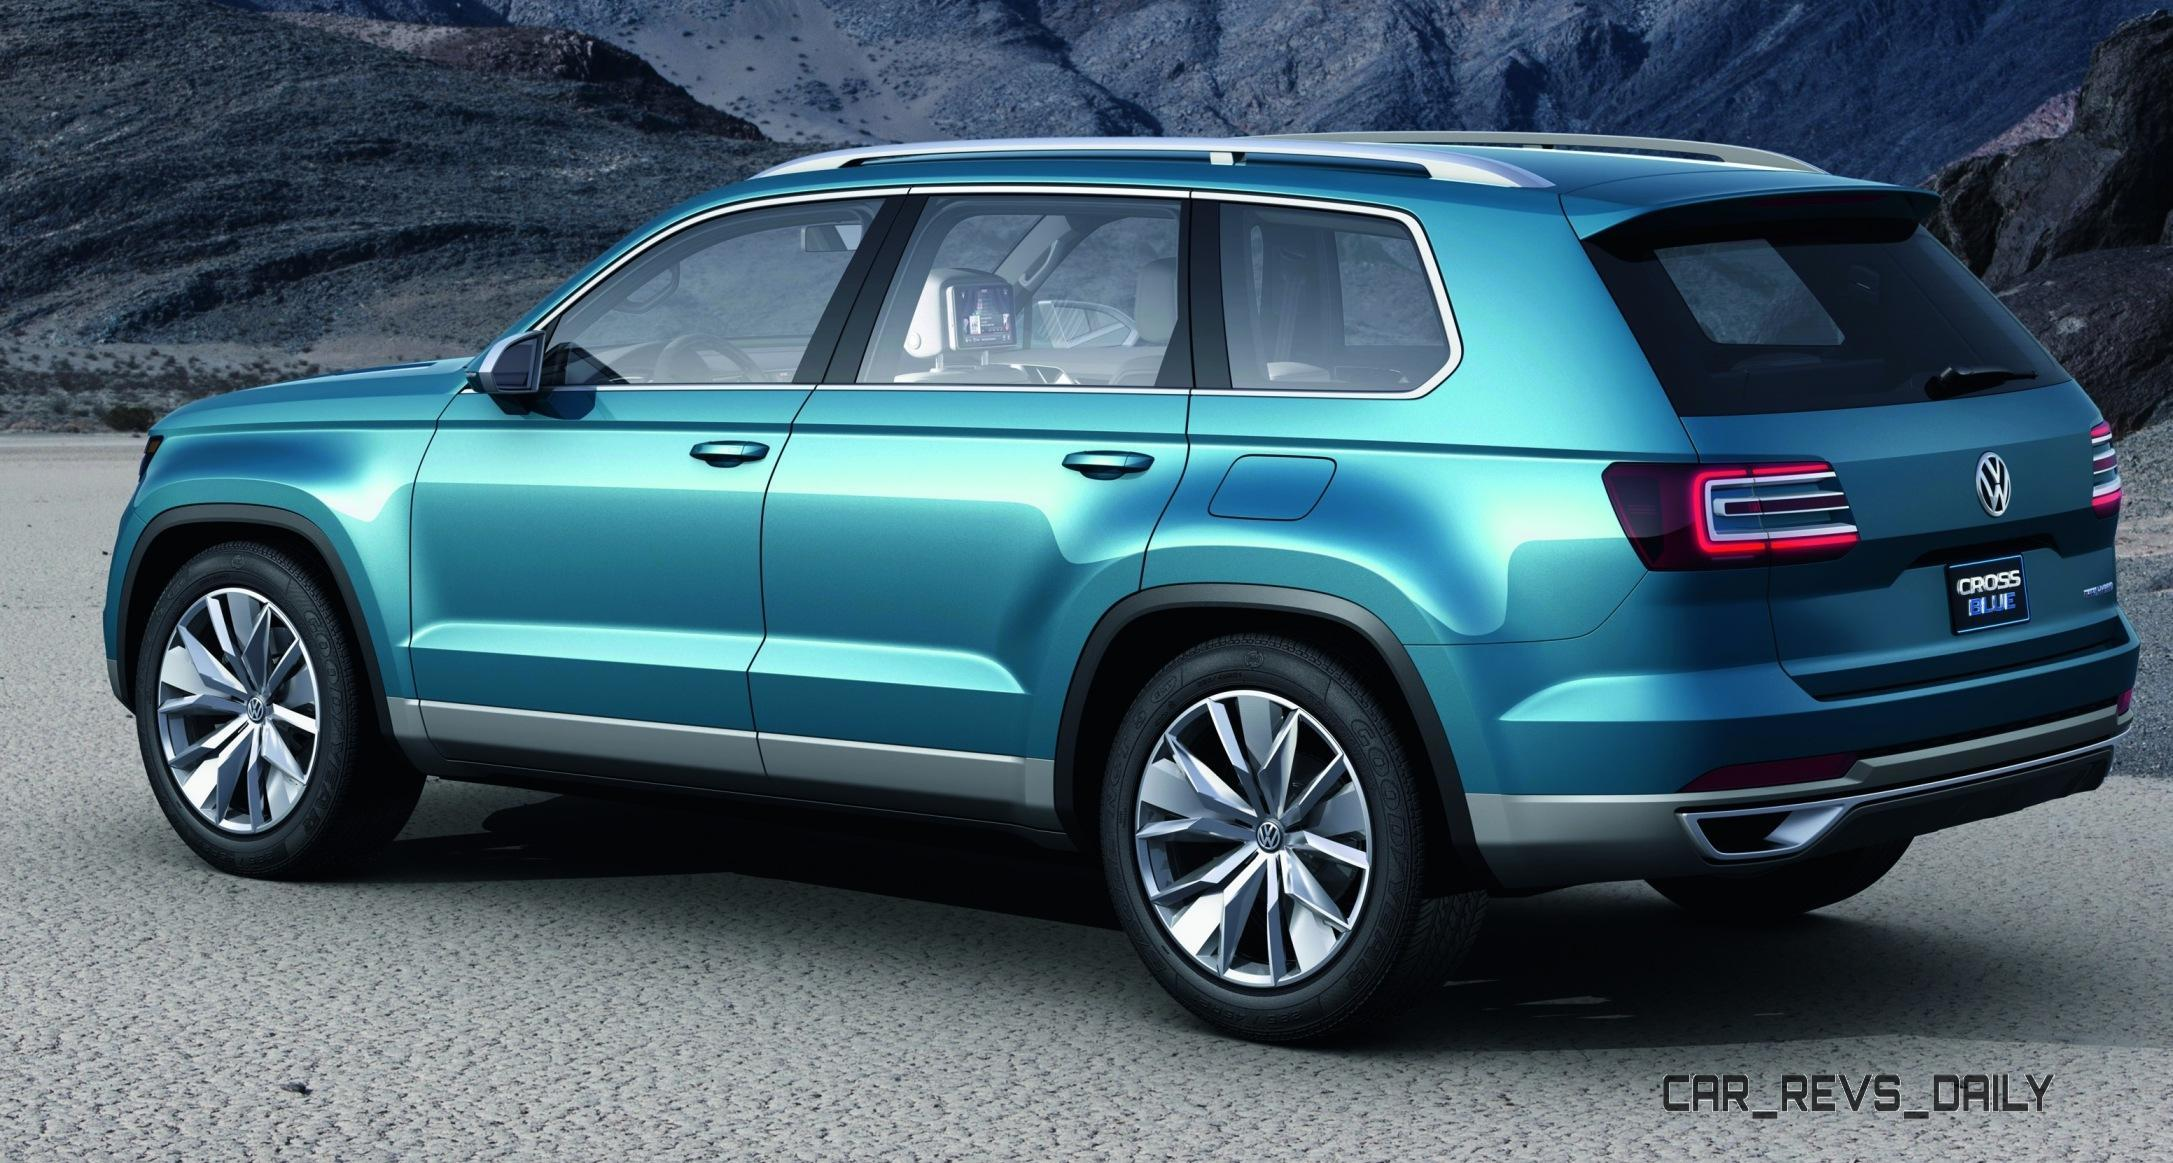 Official: Volkswagen Mid-size SUV Will Seat 7, Be Built in USA - Name TBD